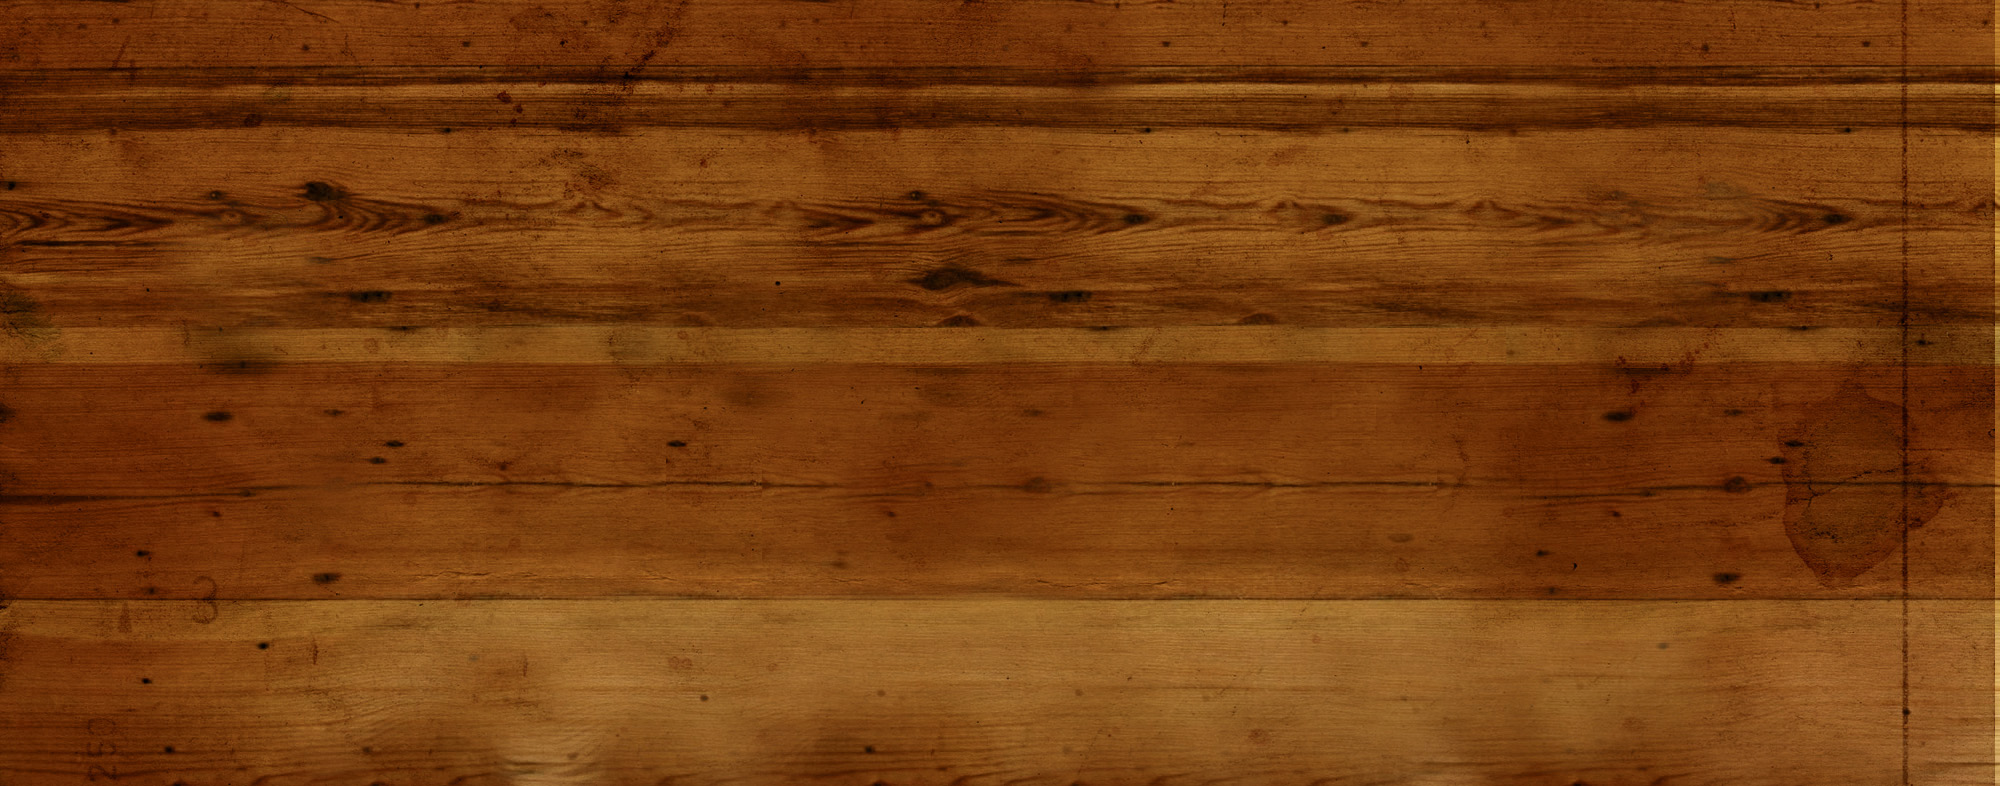 Stained Wood Background Texture Flickr Photo Sharing